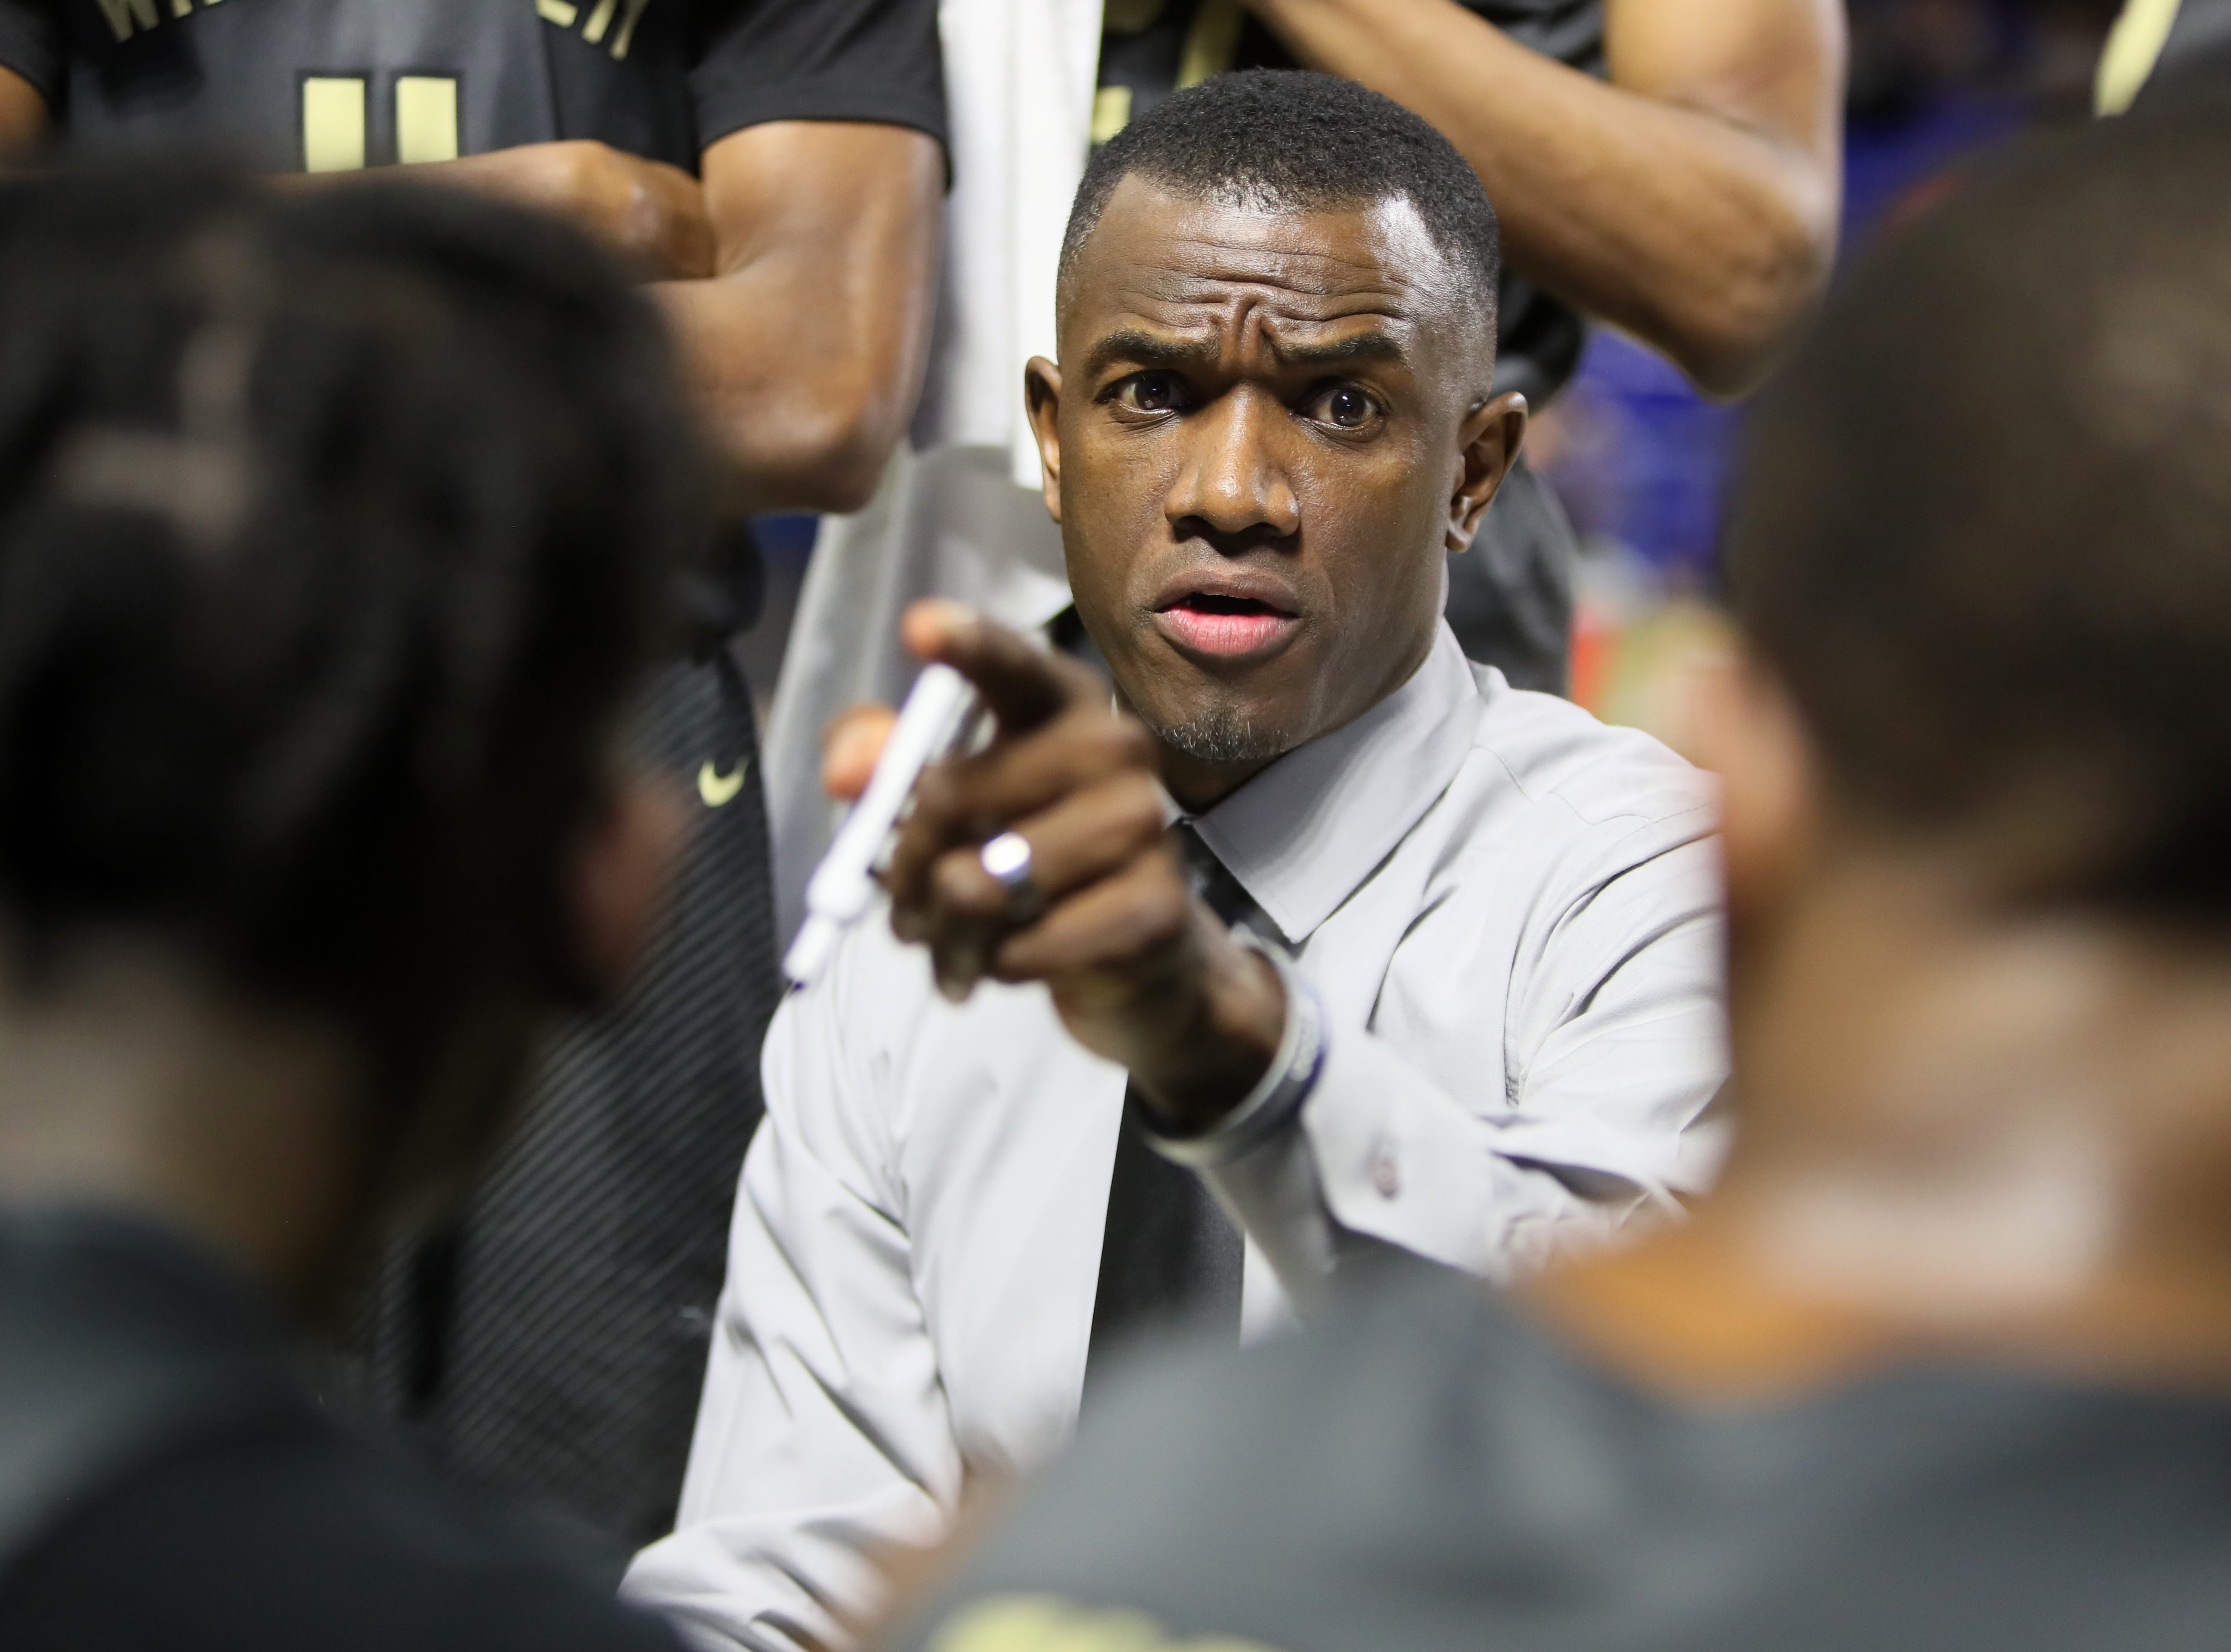 Whitehaven Head Coach Faragi Phillips talks to his team during a timeout in their game against Sevier County during the TSSAA Division I basketball state tournament at the Murphy Center in Murfreesboro, Tenn. on Wednesday, March 13, 2019.